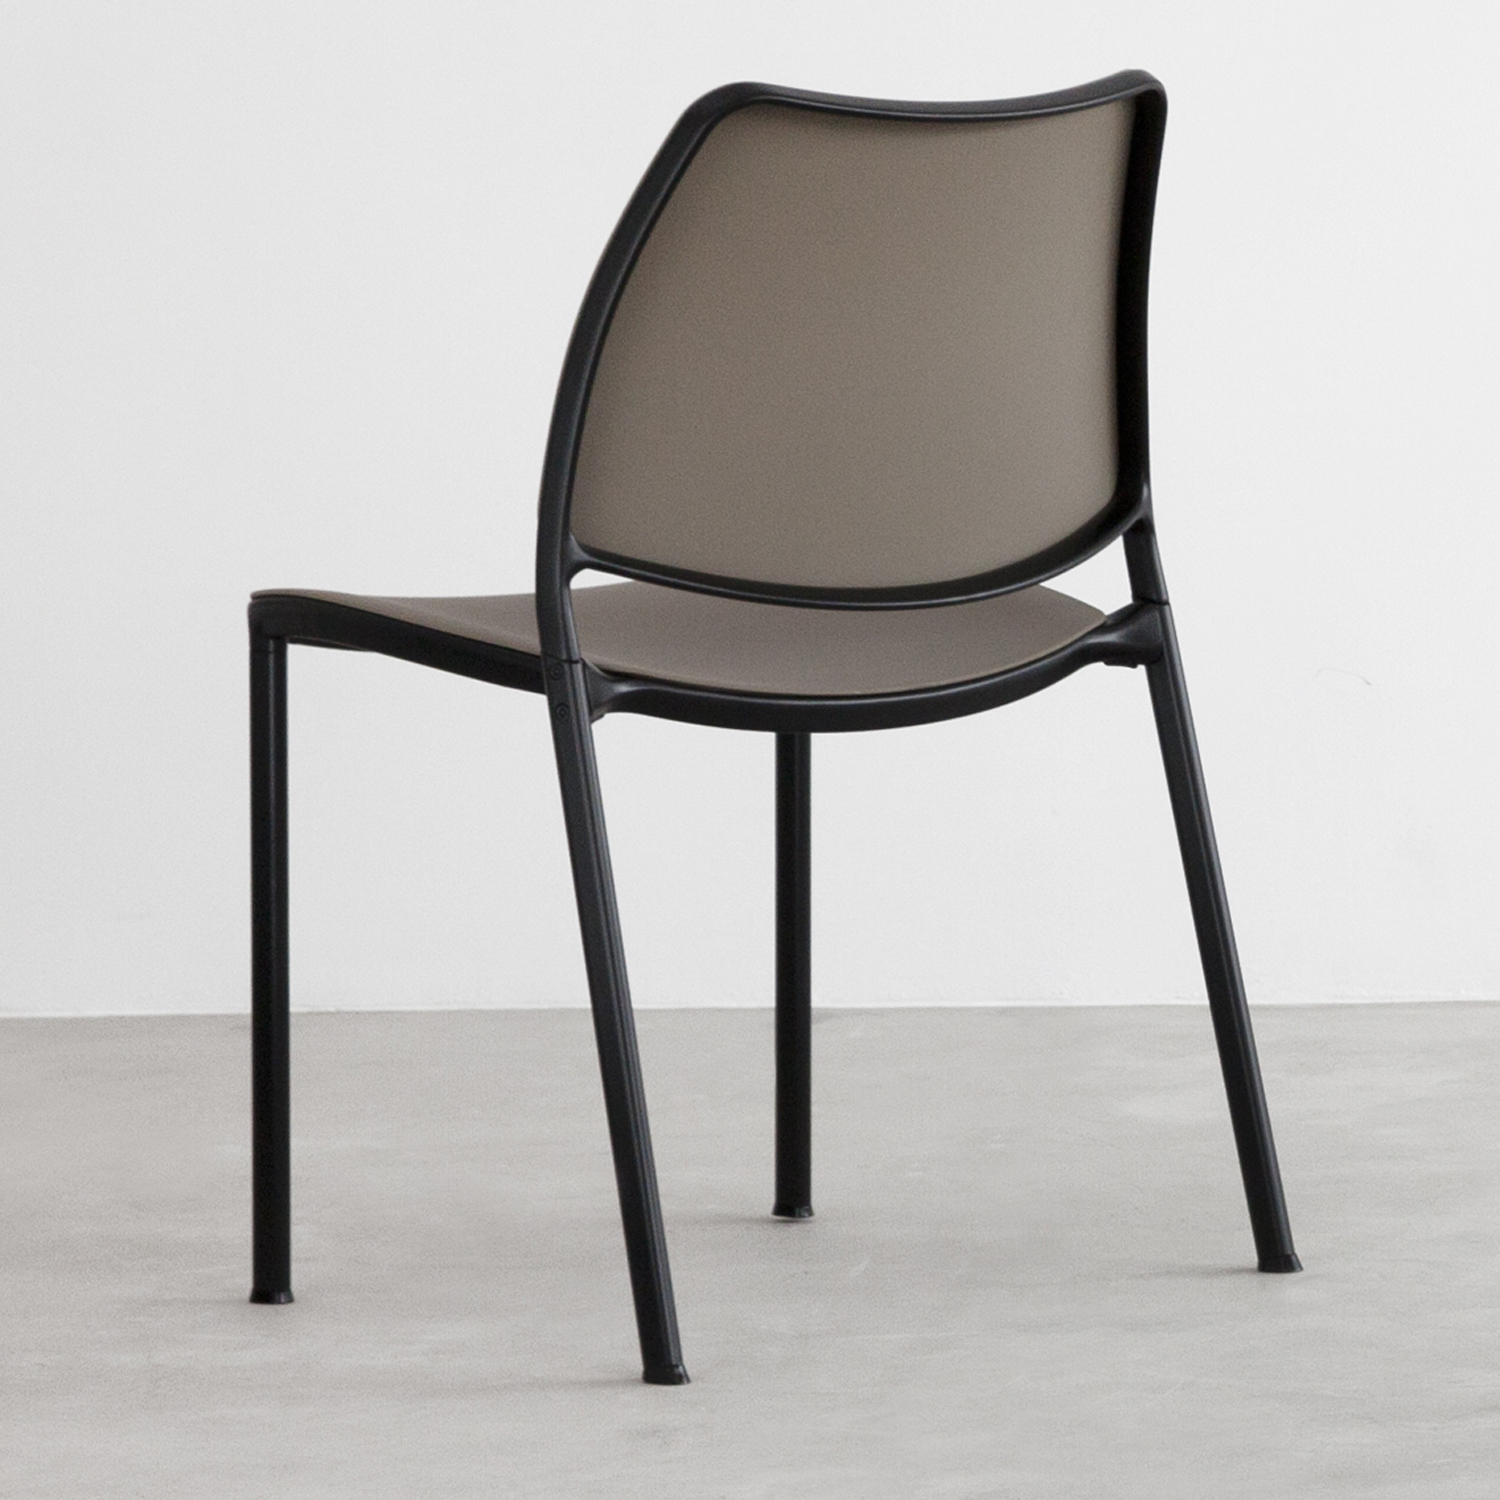 STUA gas chair with taupe polyprop and black frame